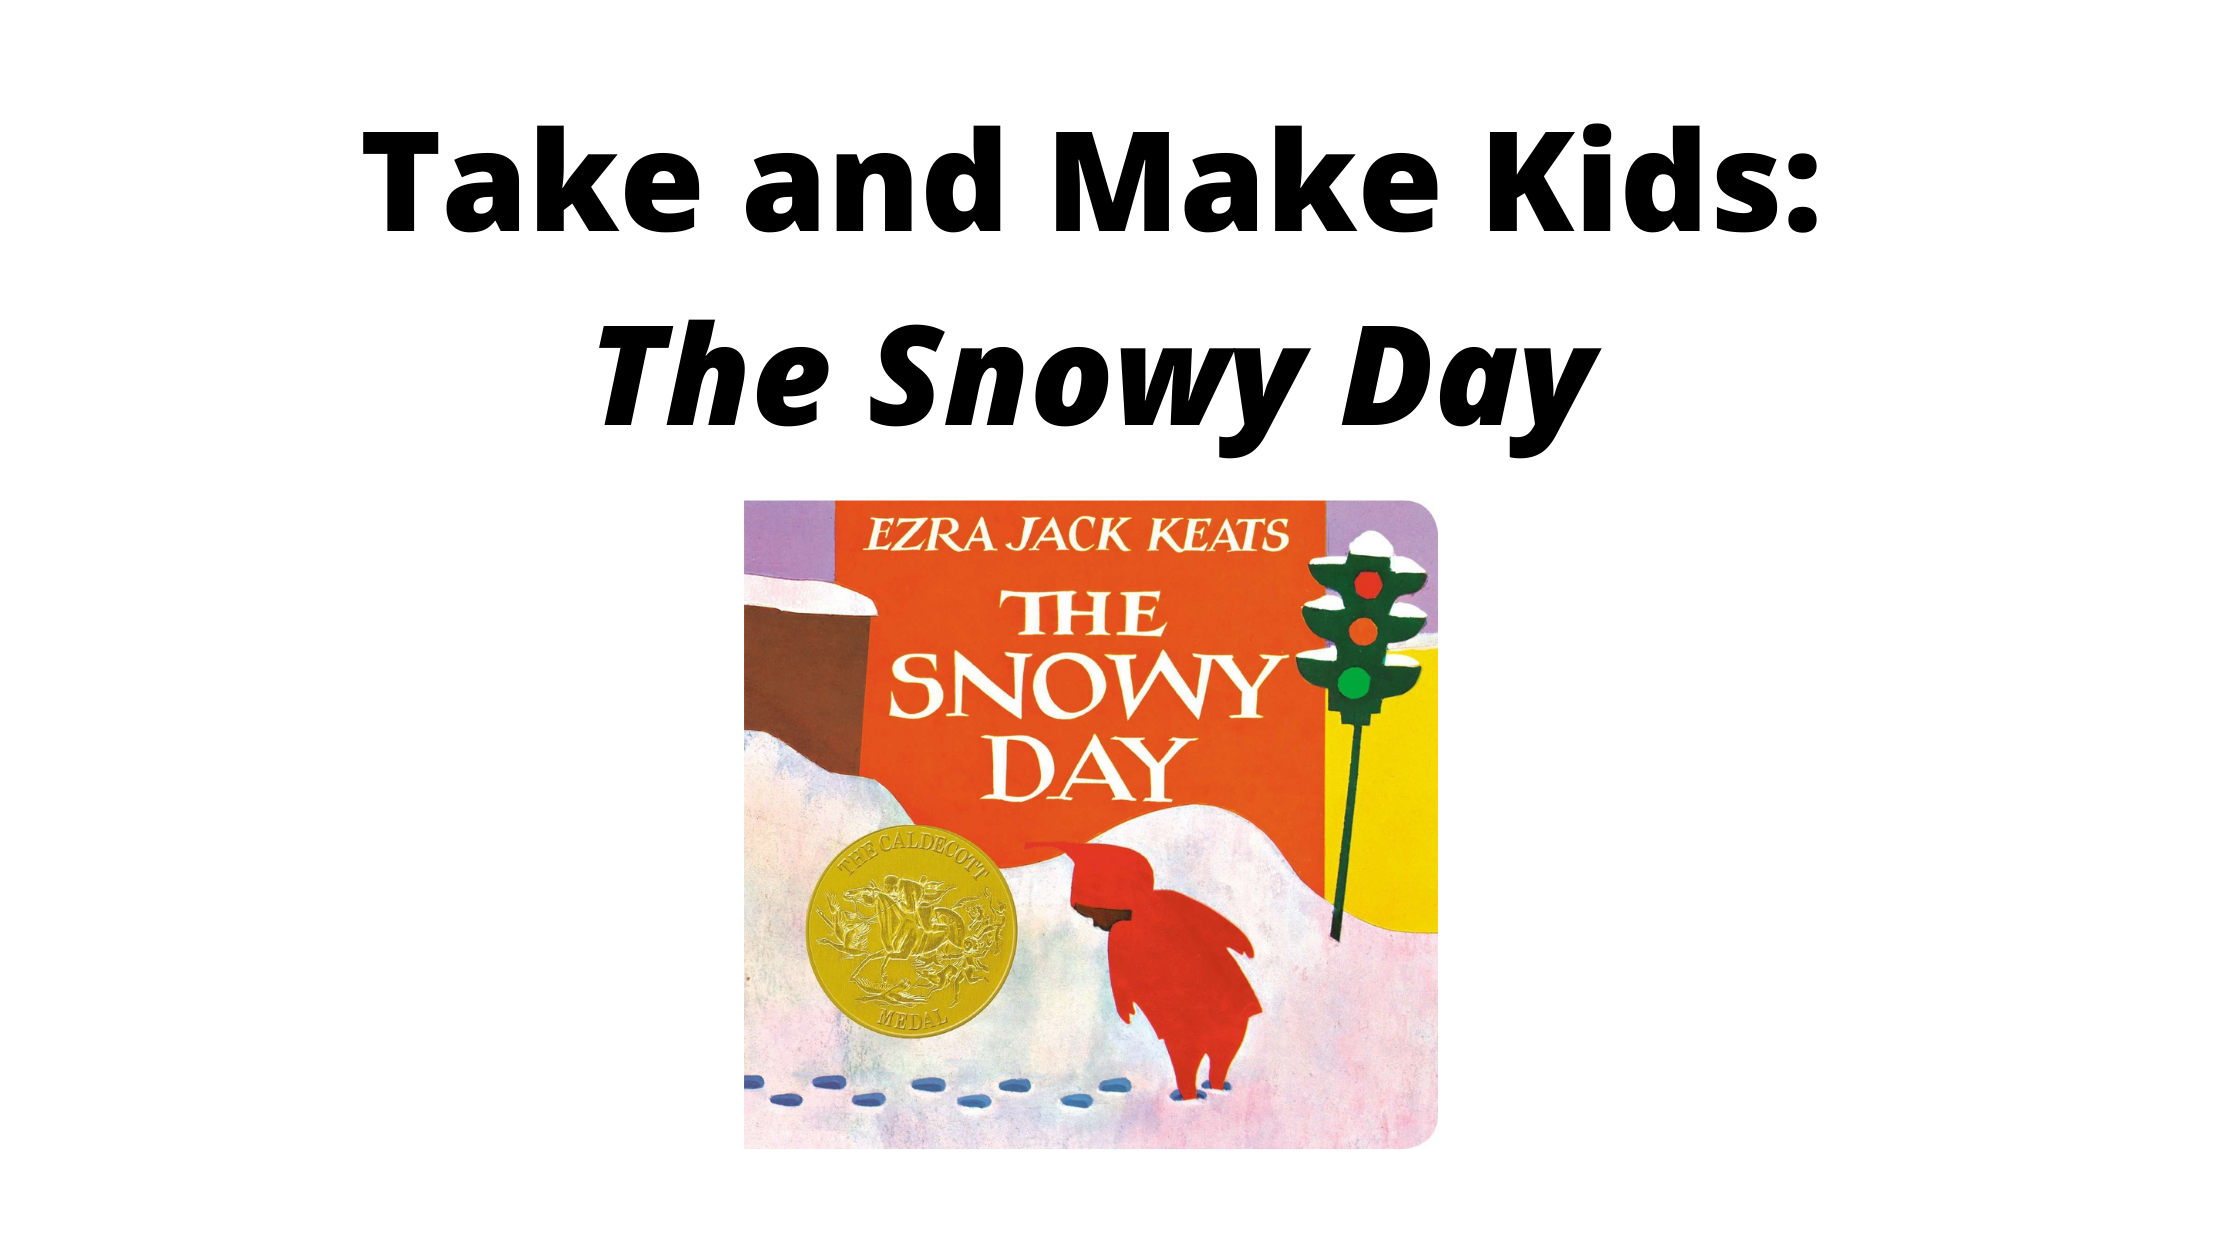 Take and Make Kids: The Snowy Day